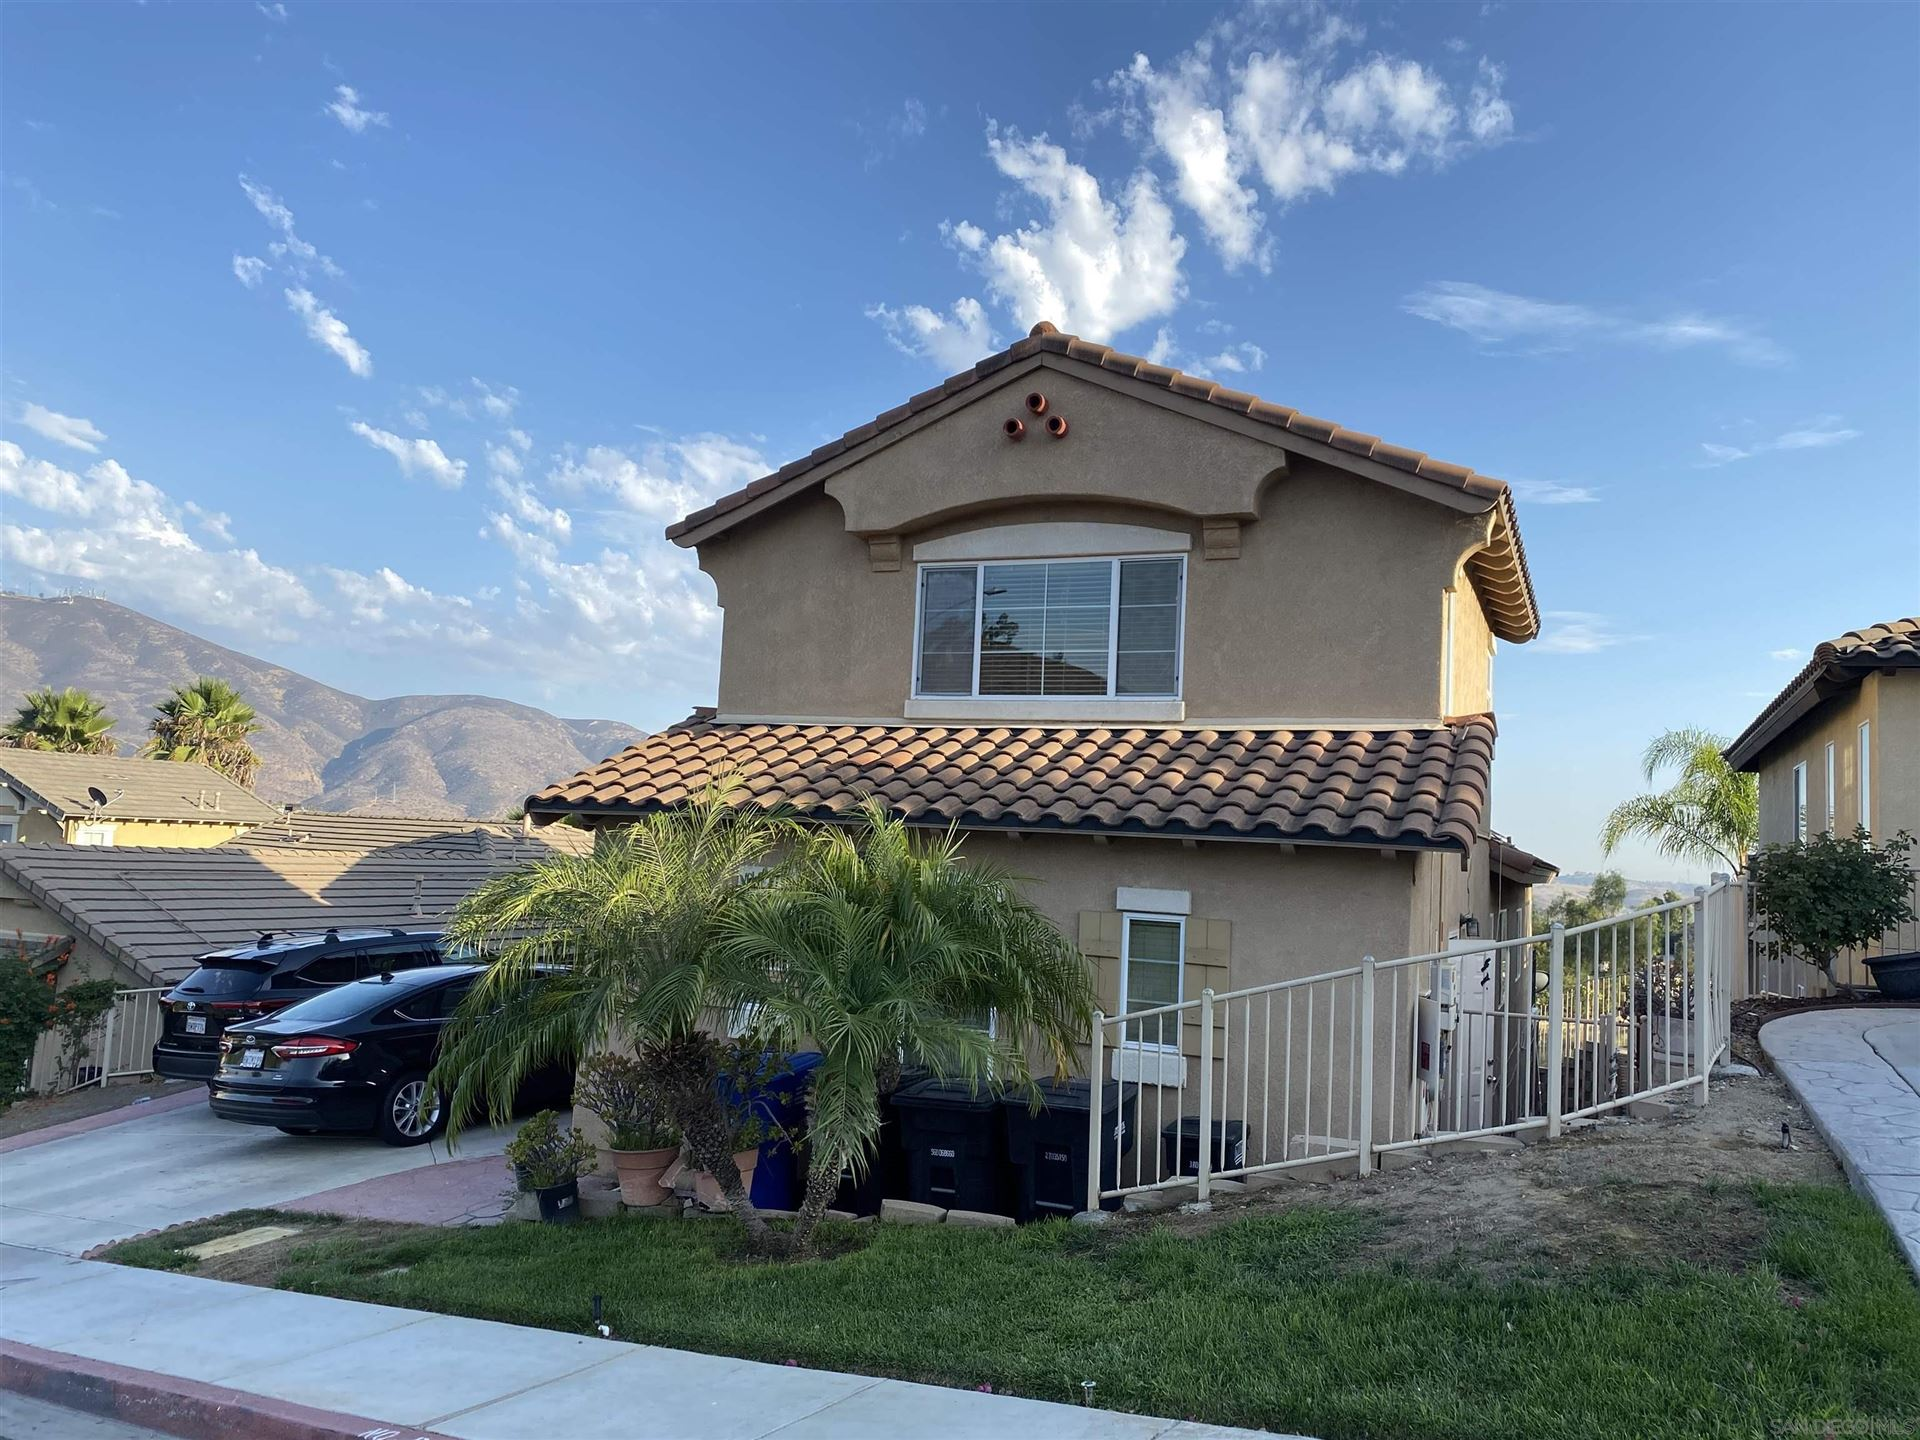 2932 Lake Breeze Ct, Spring Valley, CA 91977 - #: 210025779